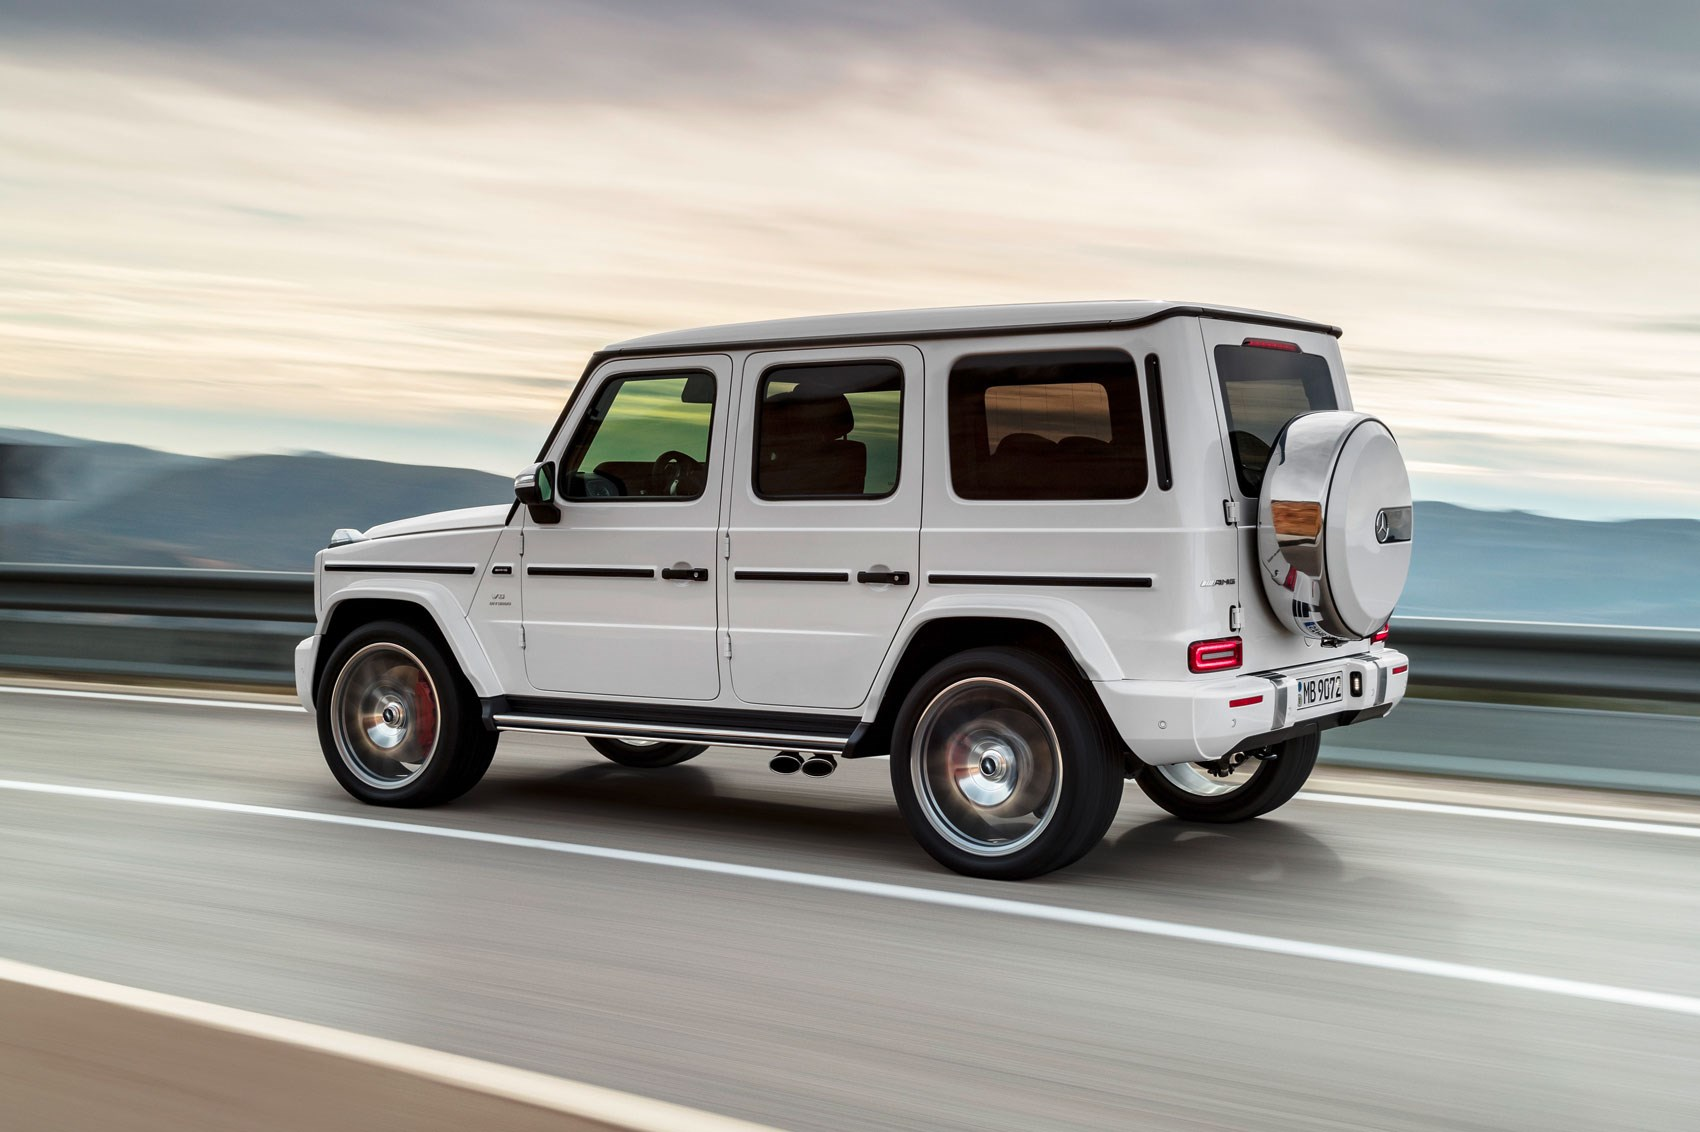 new mercedes amg g63 behemoth 4x4 gets a 577bhp affalterbach makeover by car magazine. Black Bedroom Furniture Sets. Home Design Ideas